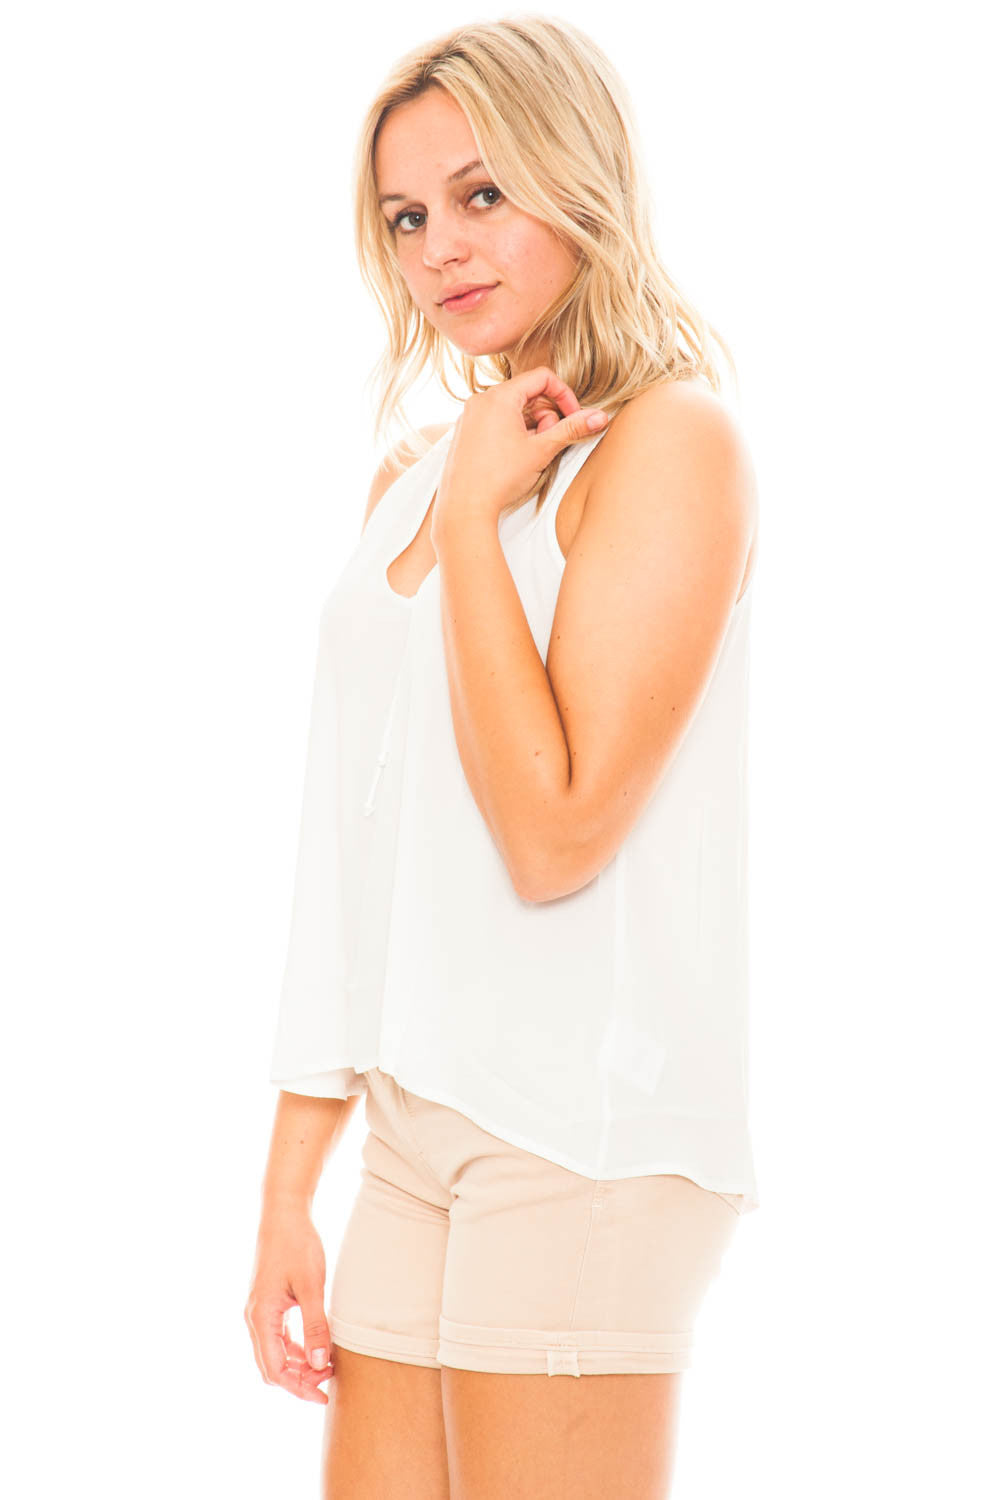 Shirt - Sleeveless Chiffon Tank by Lush